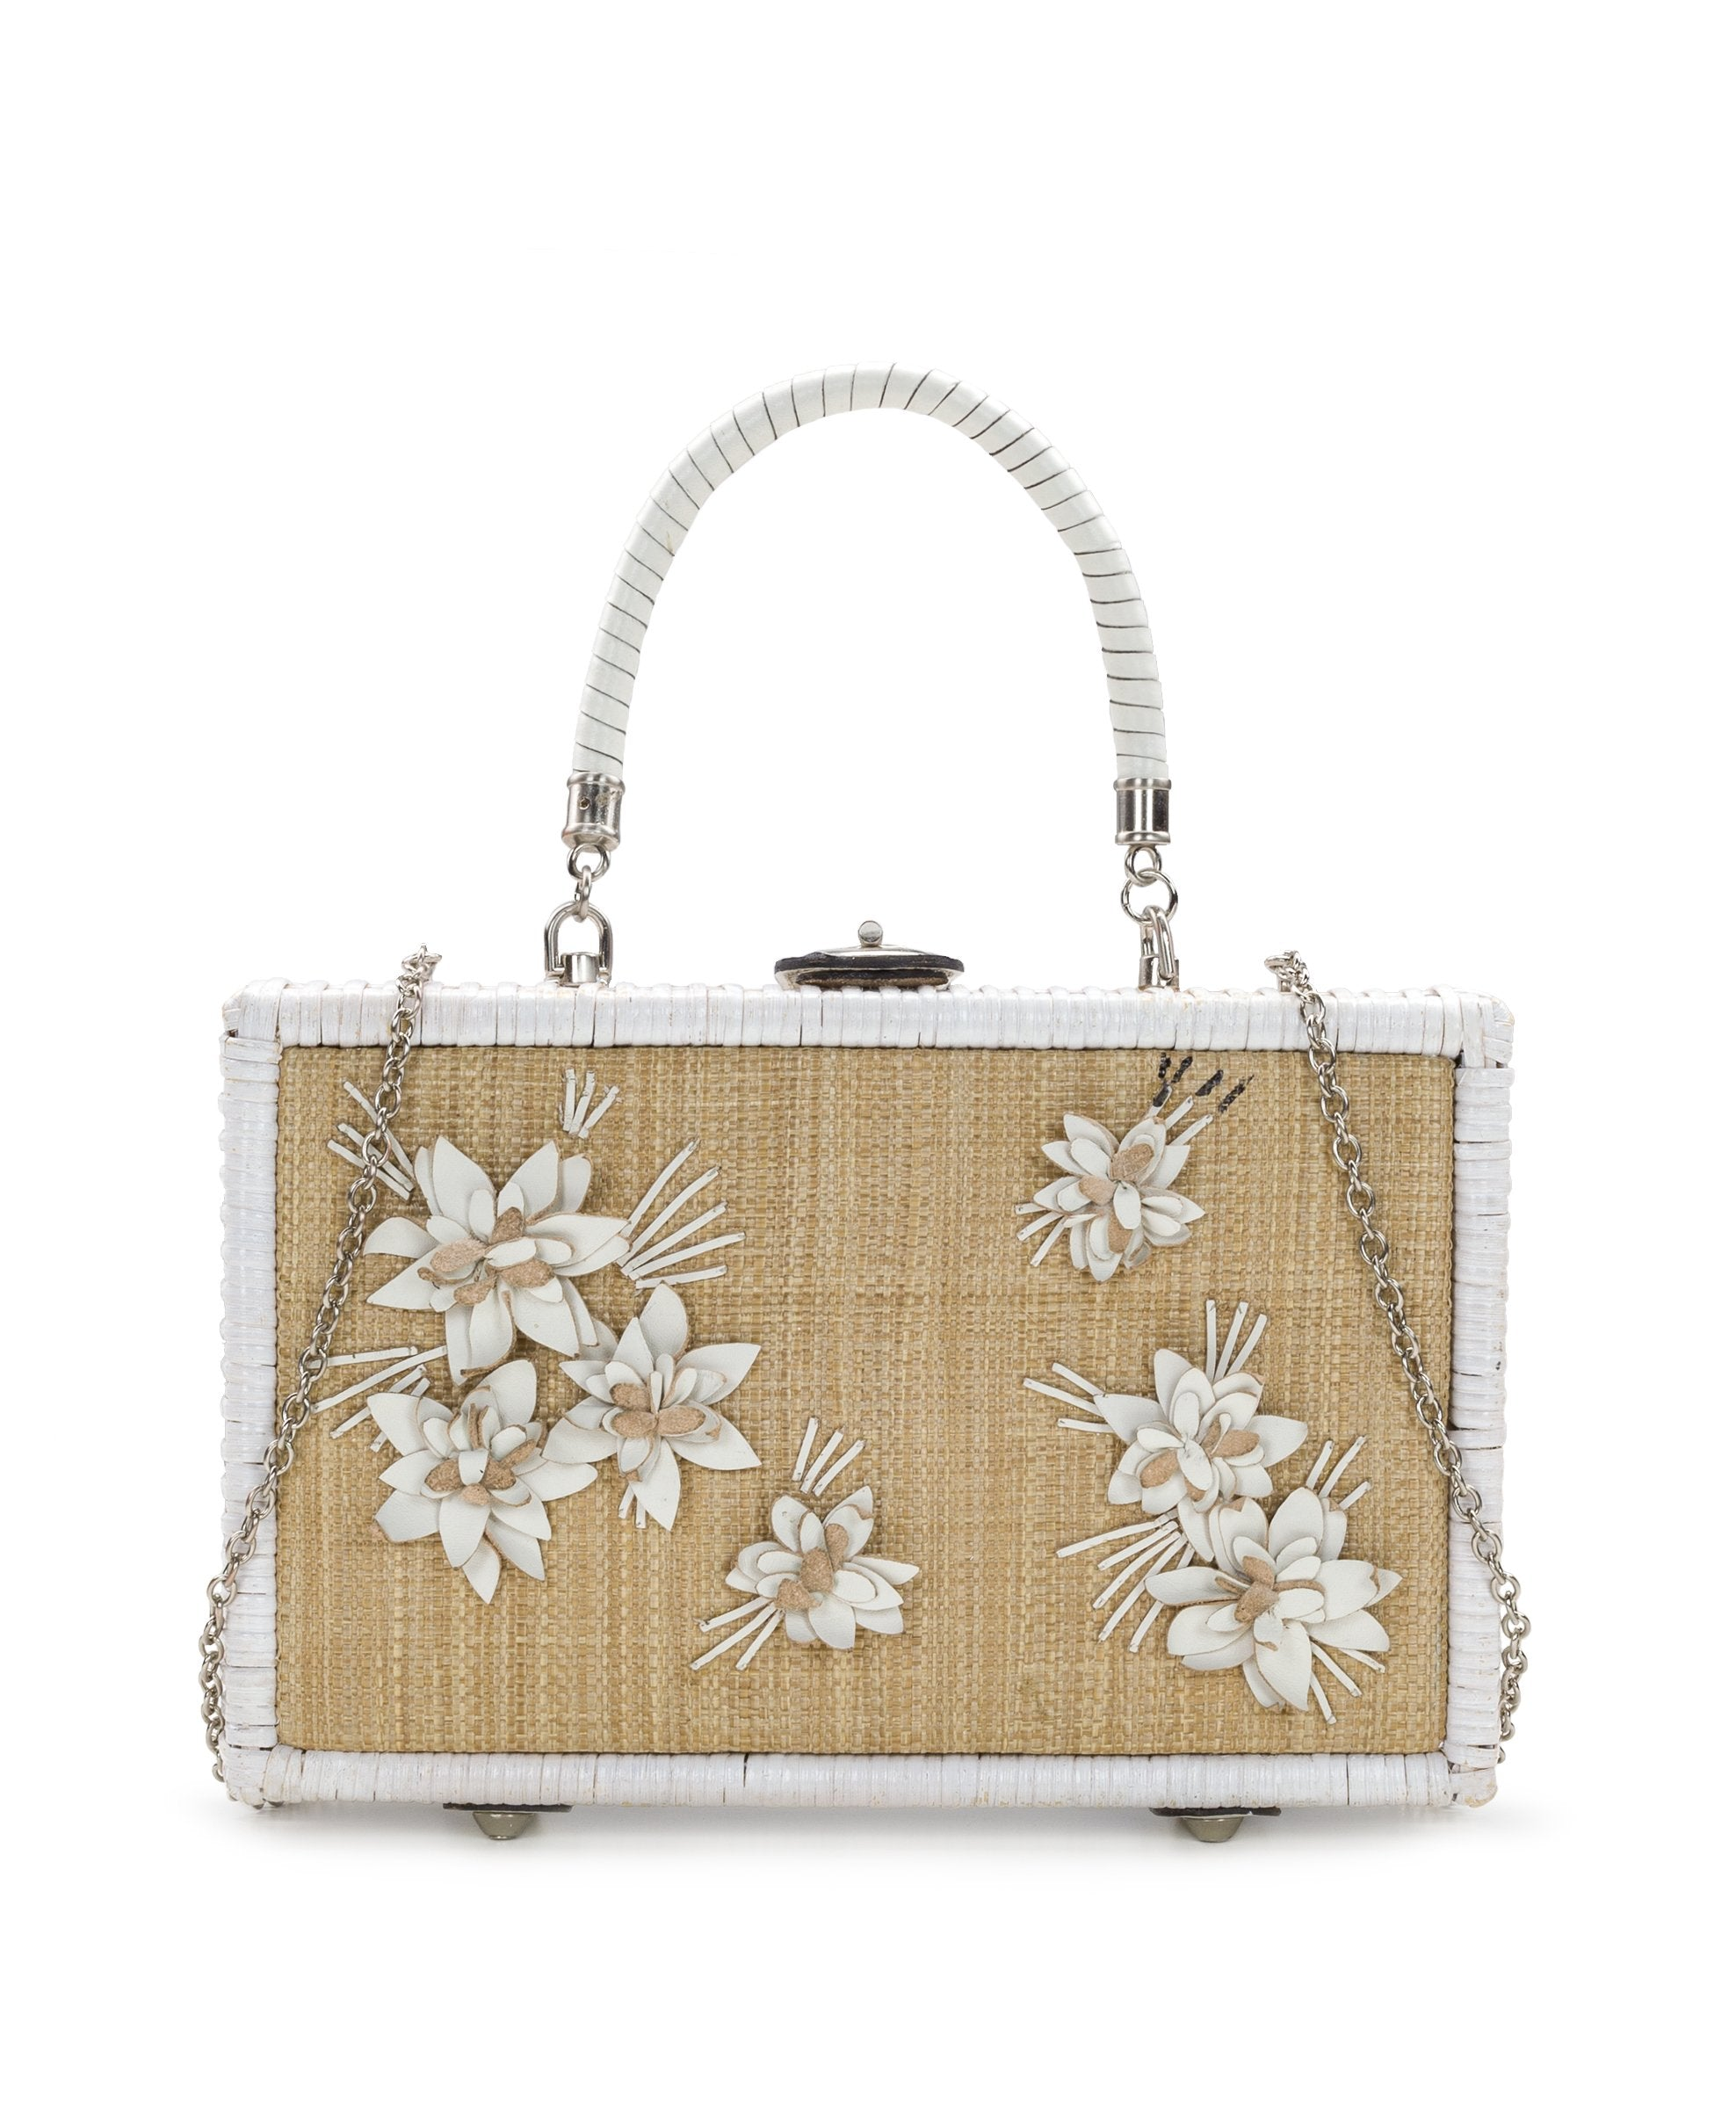 Lamezia Box Bag - Spring Wicker - White